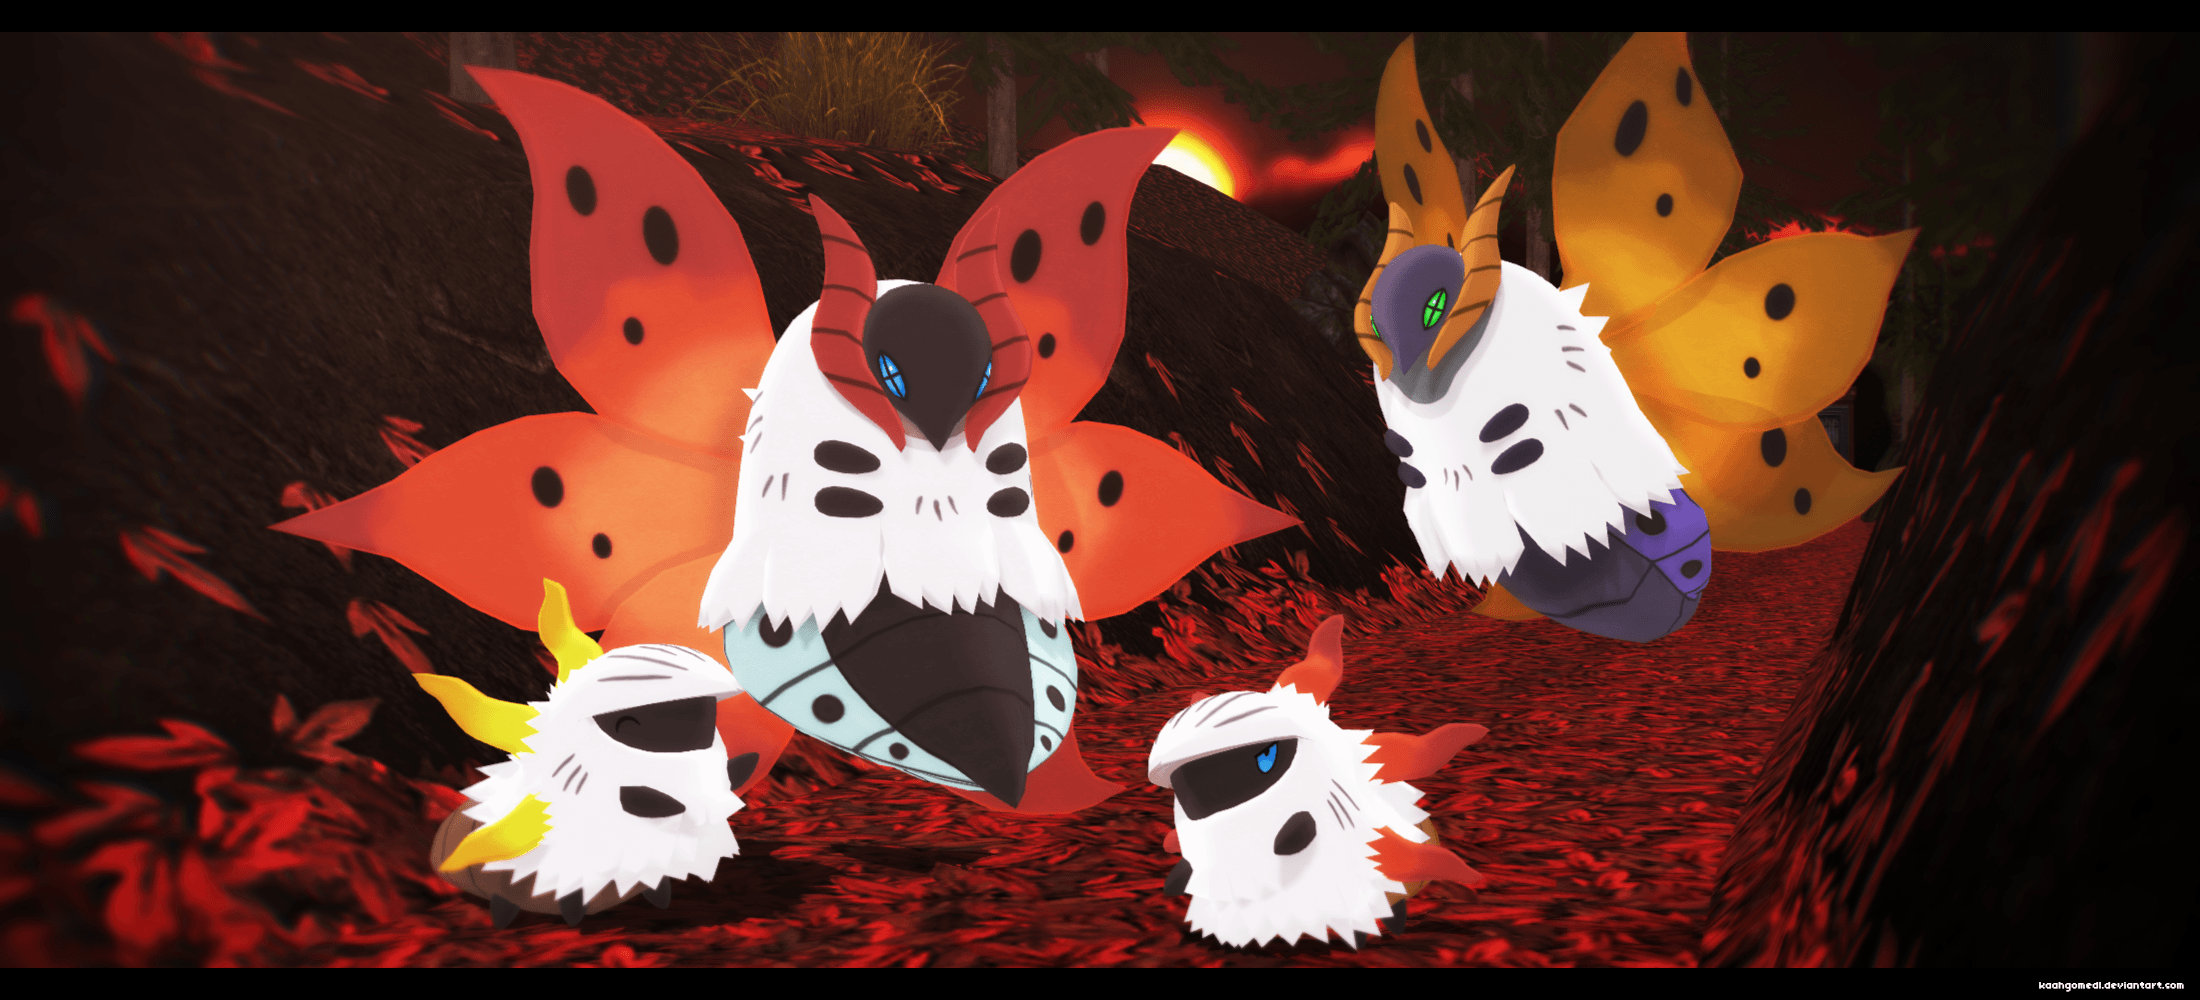 MMD Pokemon: Volcarona and Larvesta by kaahgomedl on DeviantArt